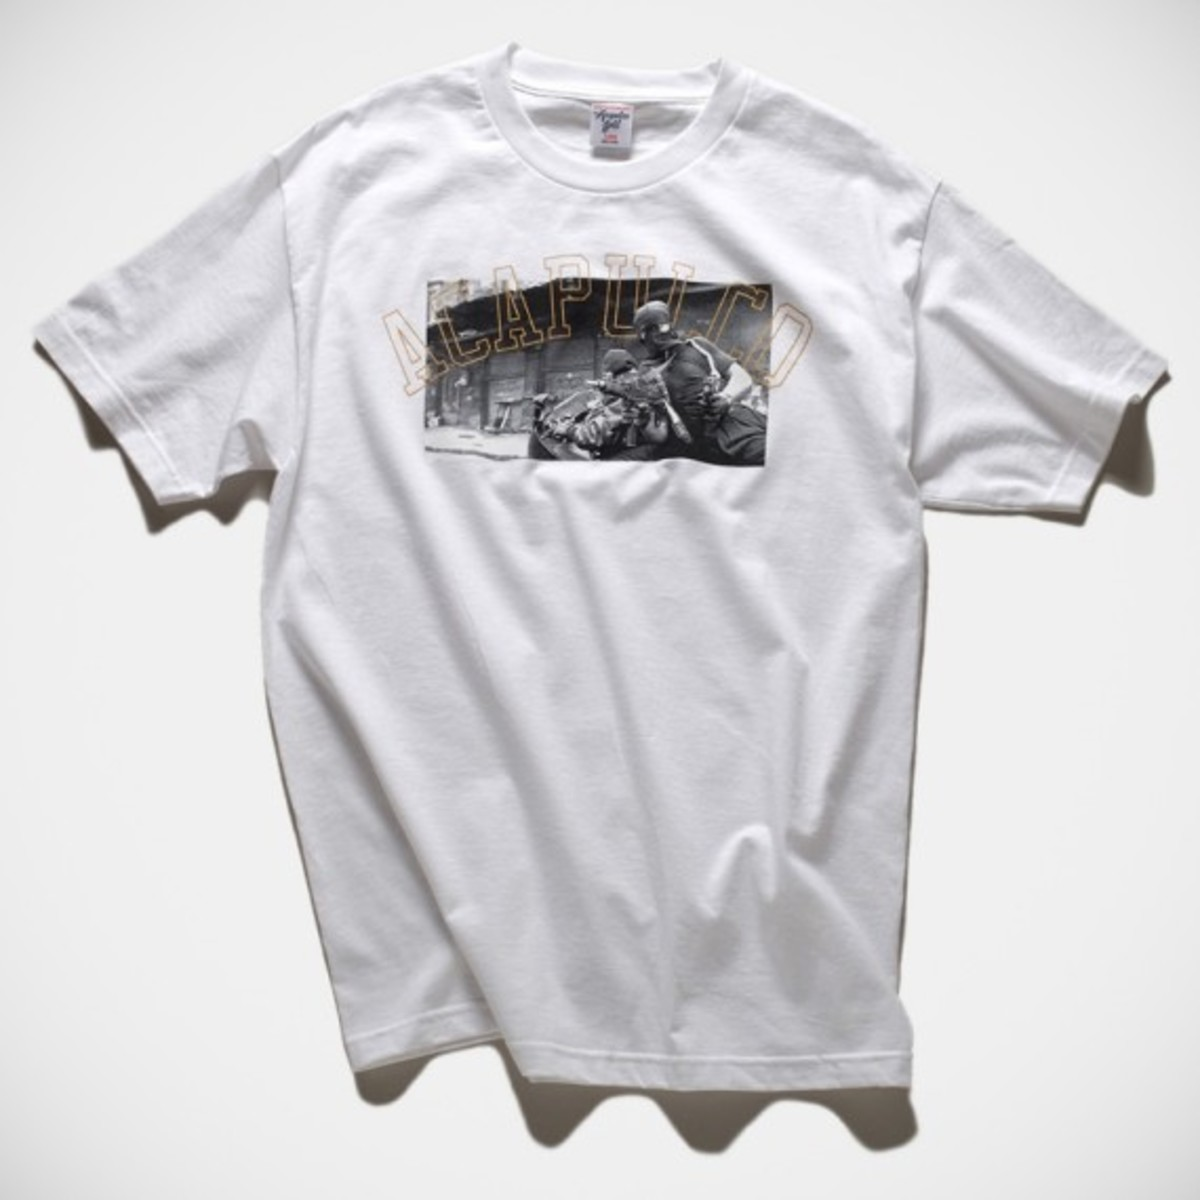 acapulco-gold-spring-2014-collection-delivery-1-35